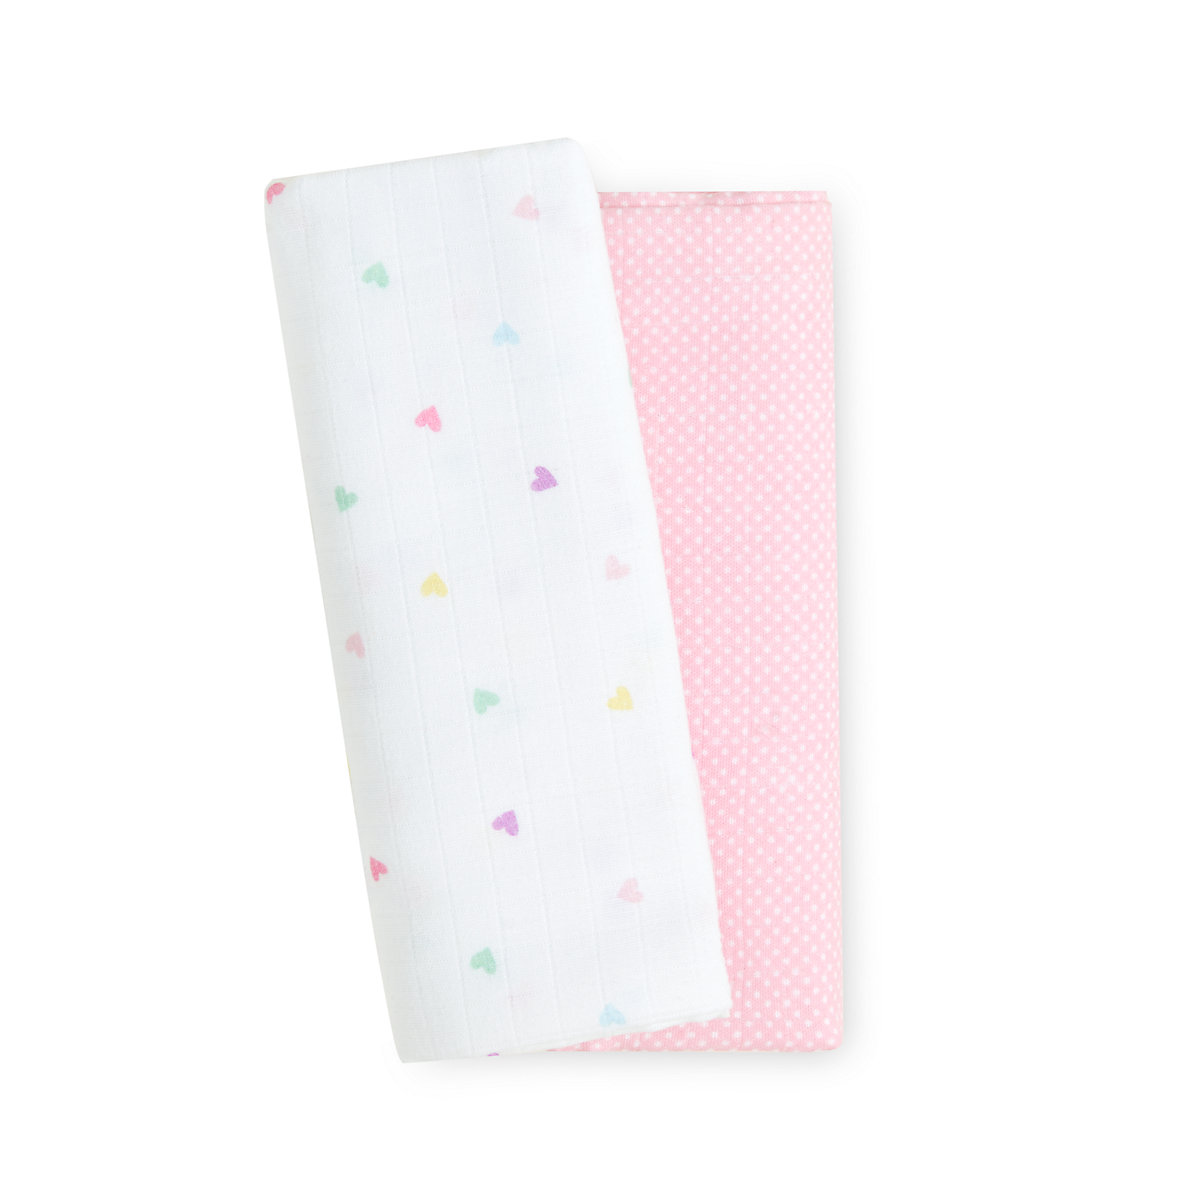 confetti party extra large muslin blankets - 2 pack